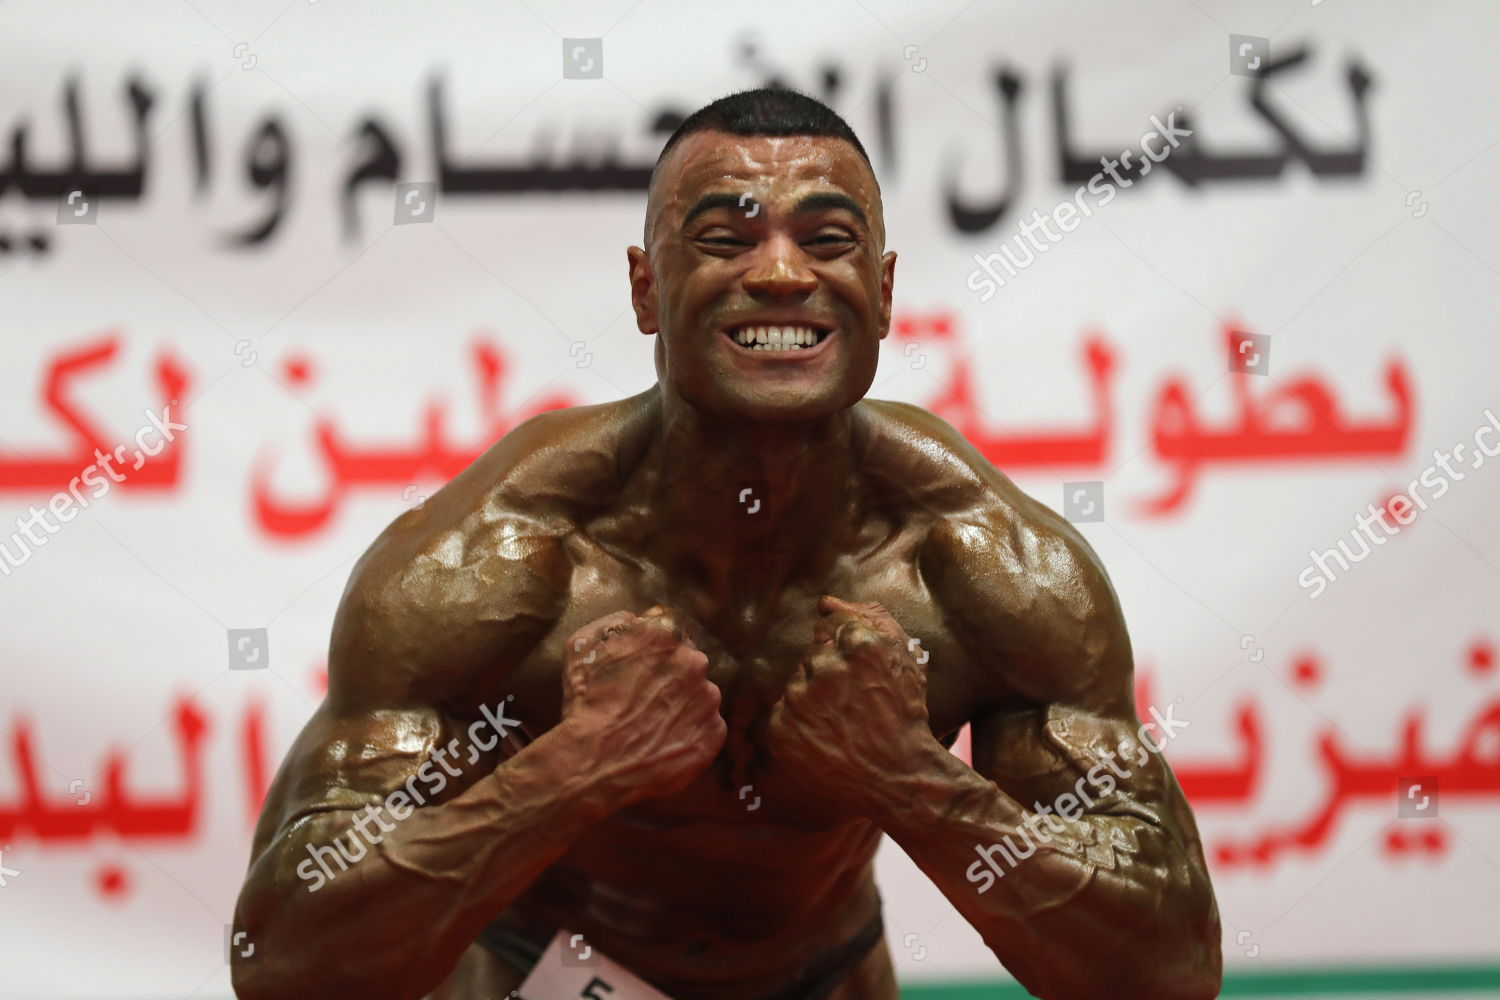 Palestinian bodybuilder flexes his muscles he competes